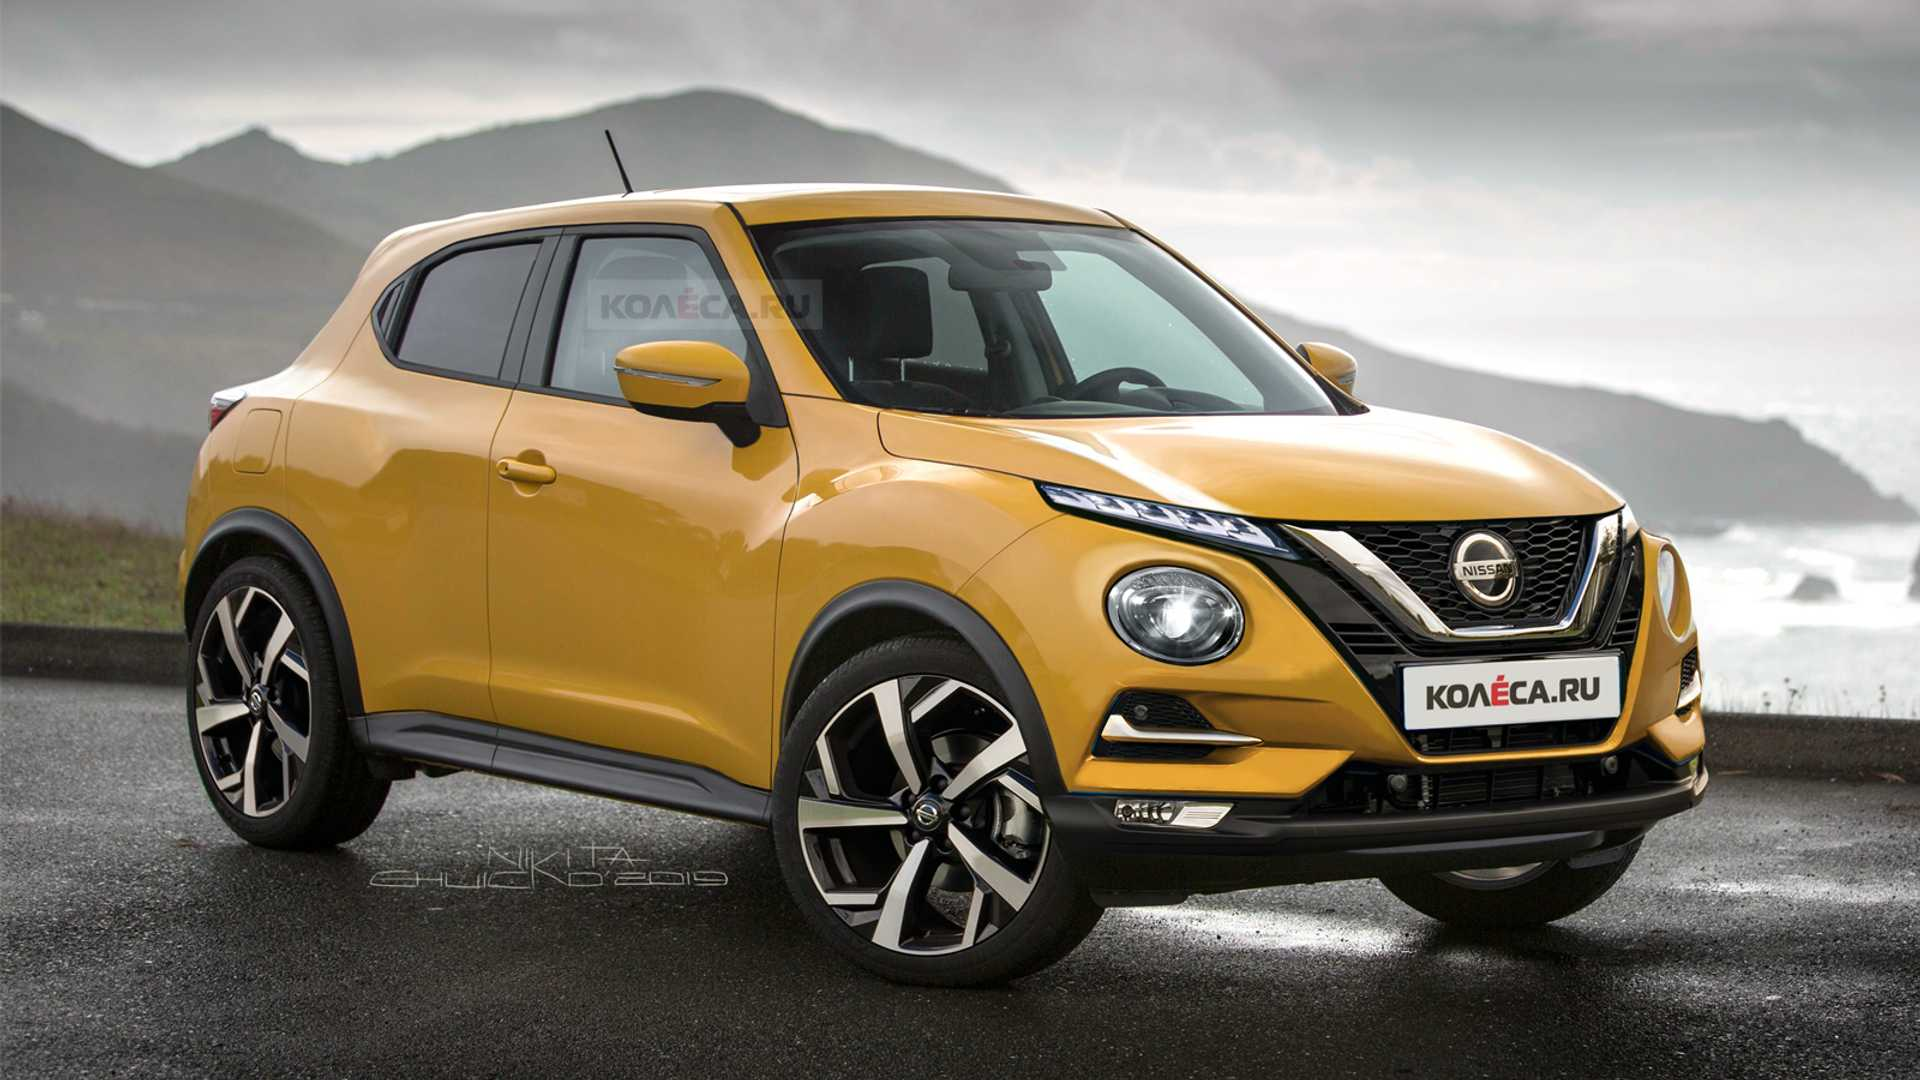 21 New Nissan Juke Concept 2020 Images